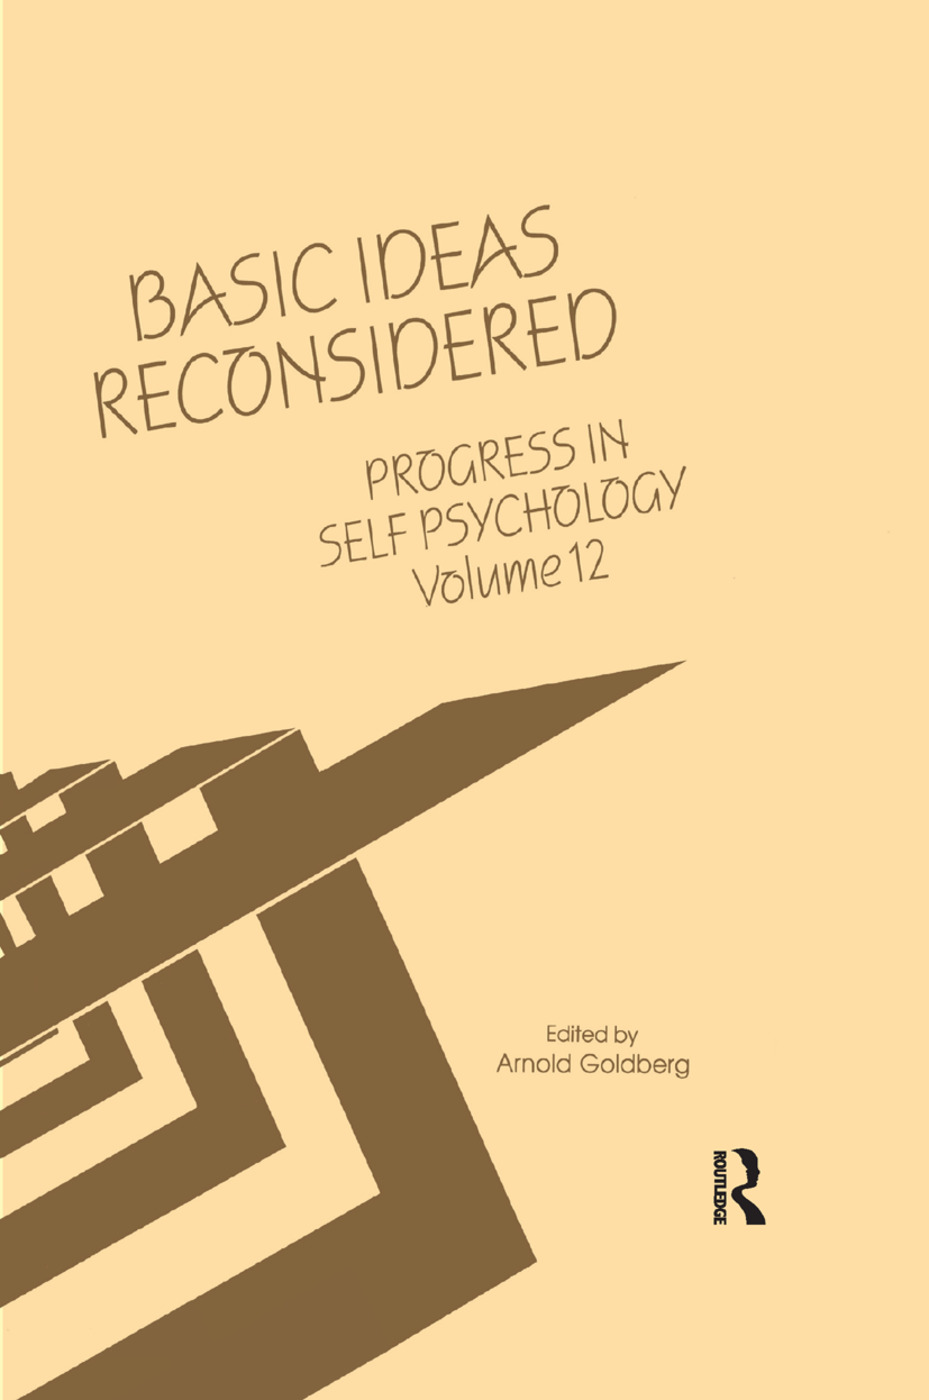 Progress in Self Psychology, V. 12: Basic Ideas Reconsidered, 1st Edition (Paperback) book cover